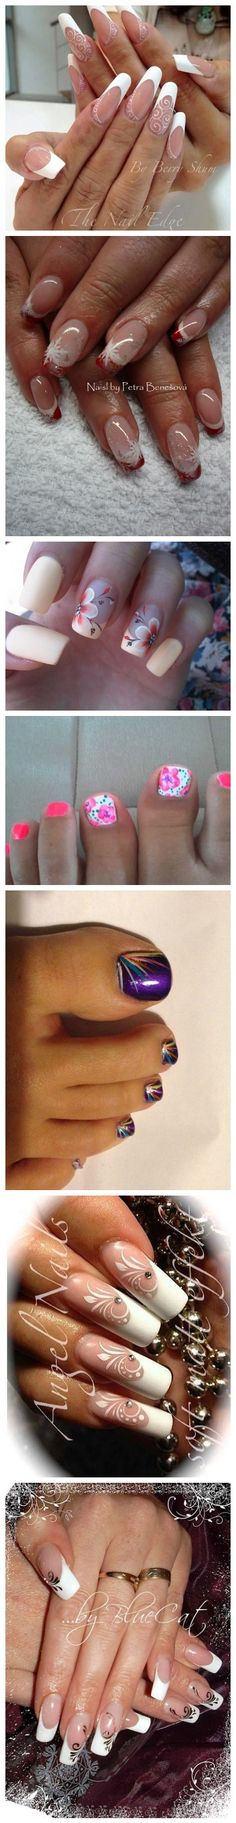 Diy Nail Art https://www.facebook.com/shorthaircutstyles/posts/1761673600789746